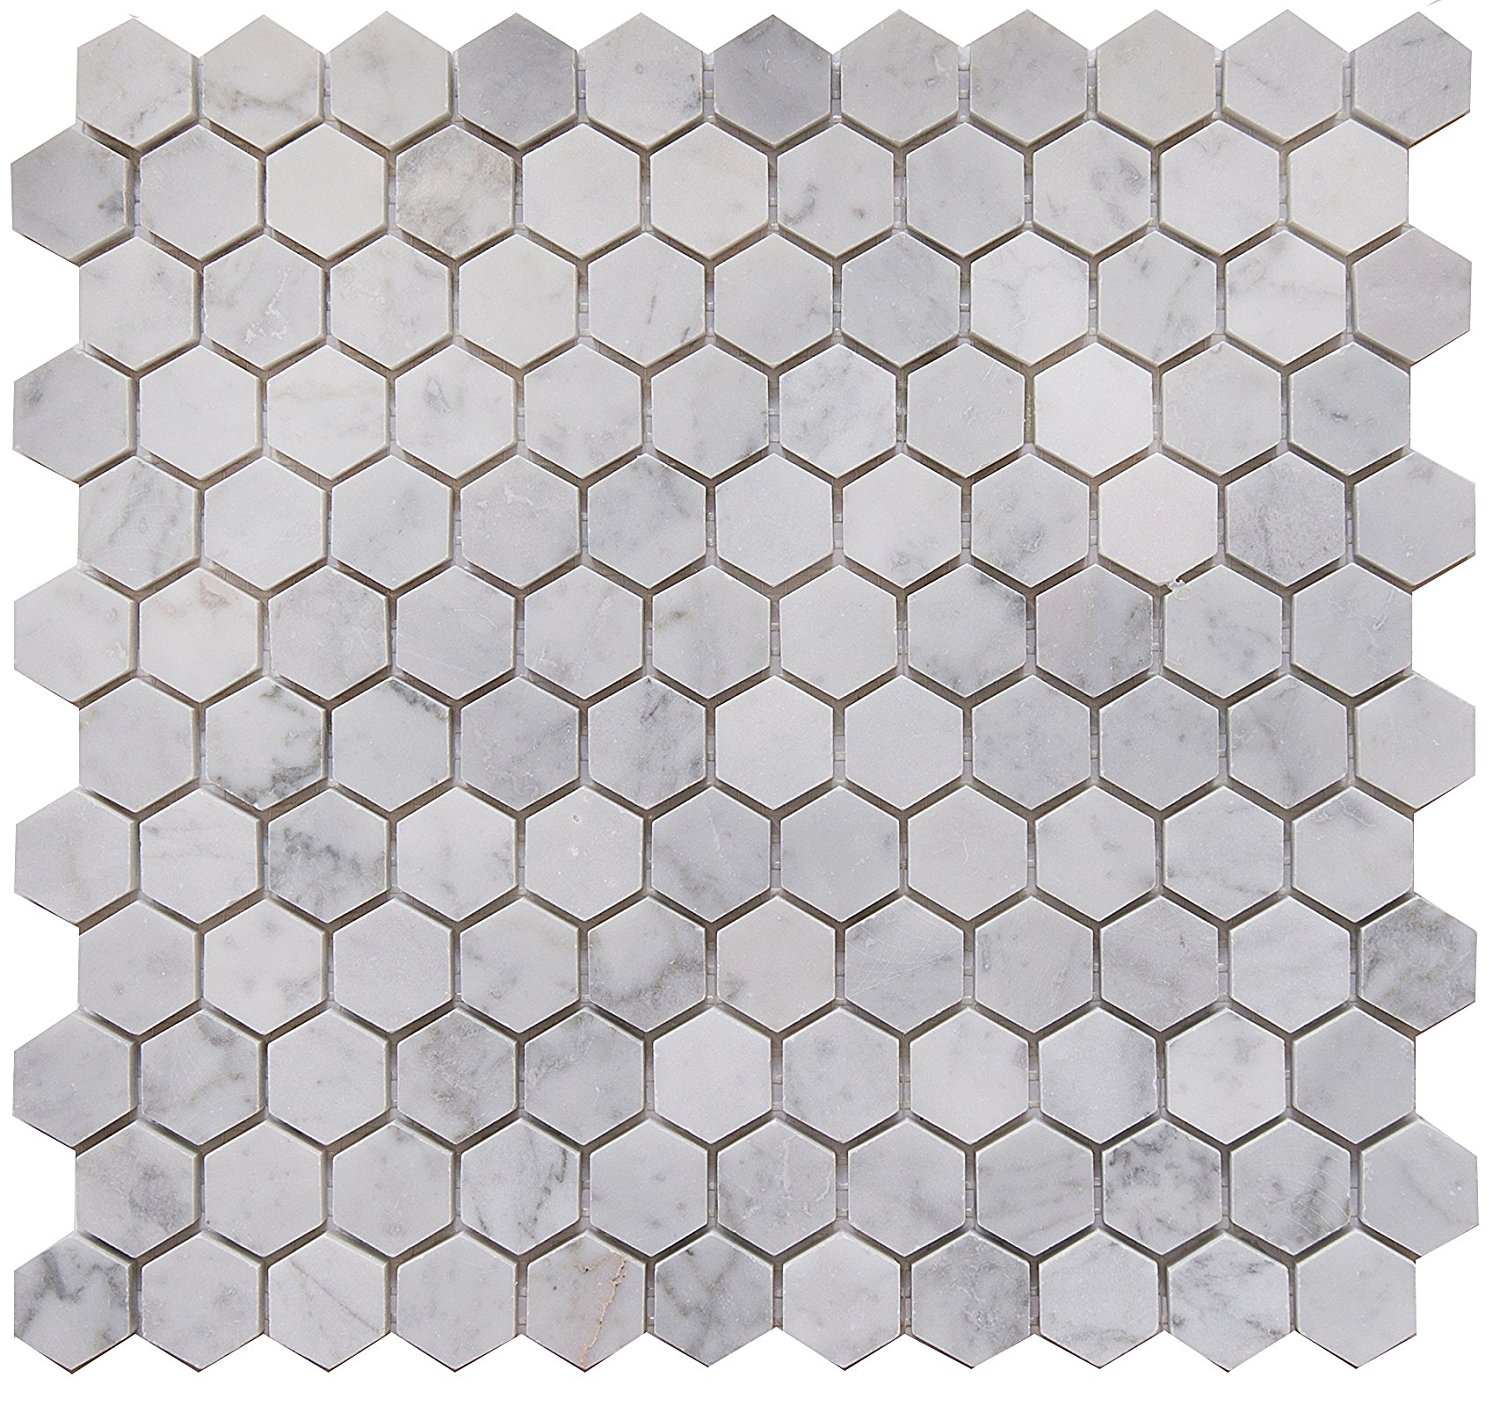 """Carrara White Marble Mosaic Tile, CWMM1HEX-H, Chip Size 1"""" Hexagon, 11-1/2""""X11""""X3/8"""", Honed (Lot of 50 Sheets)"""